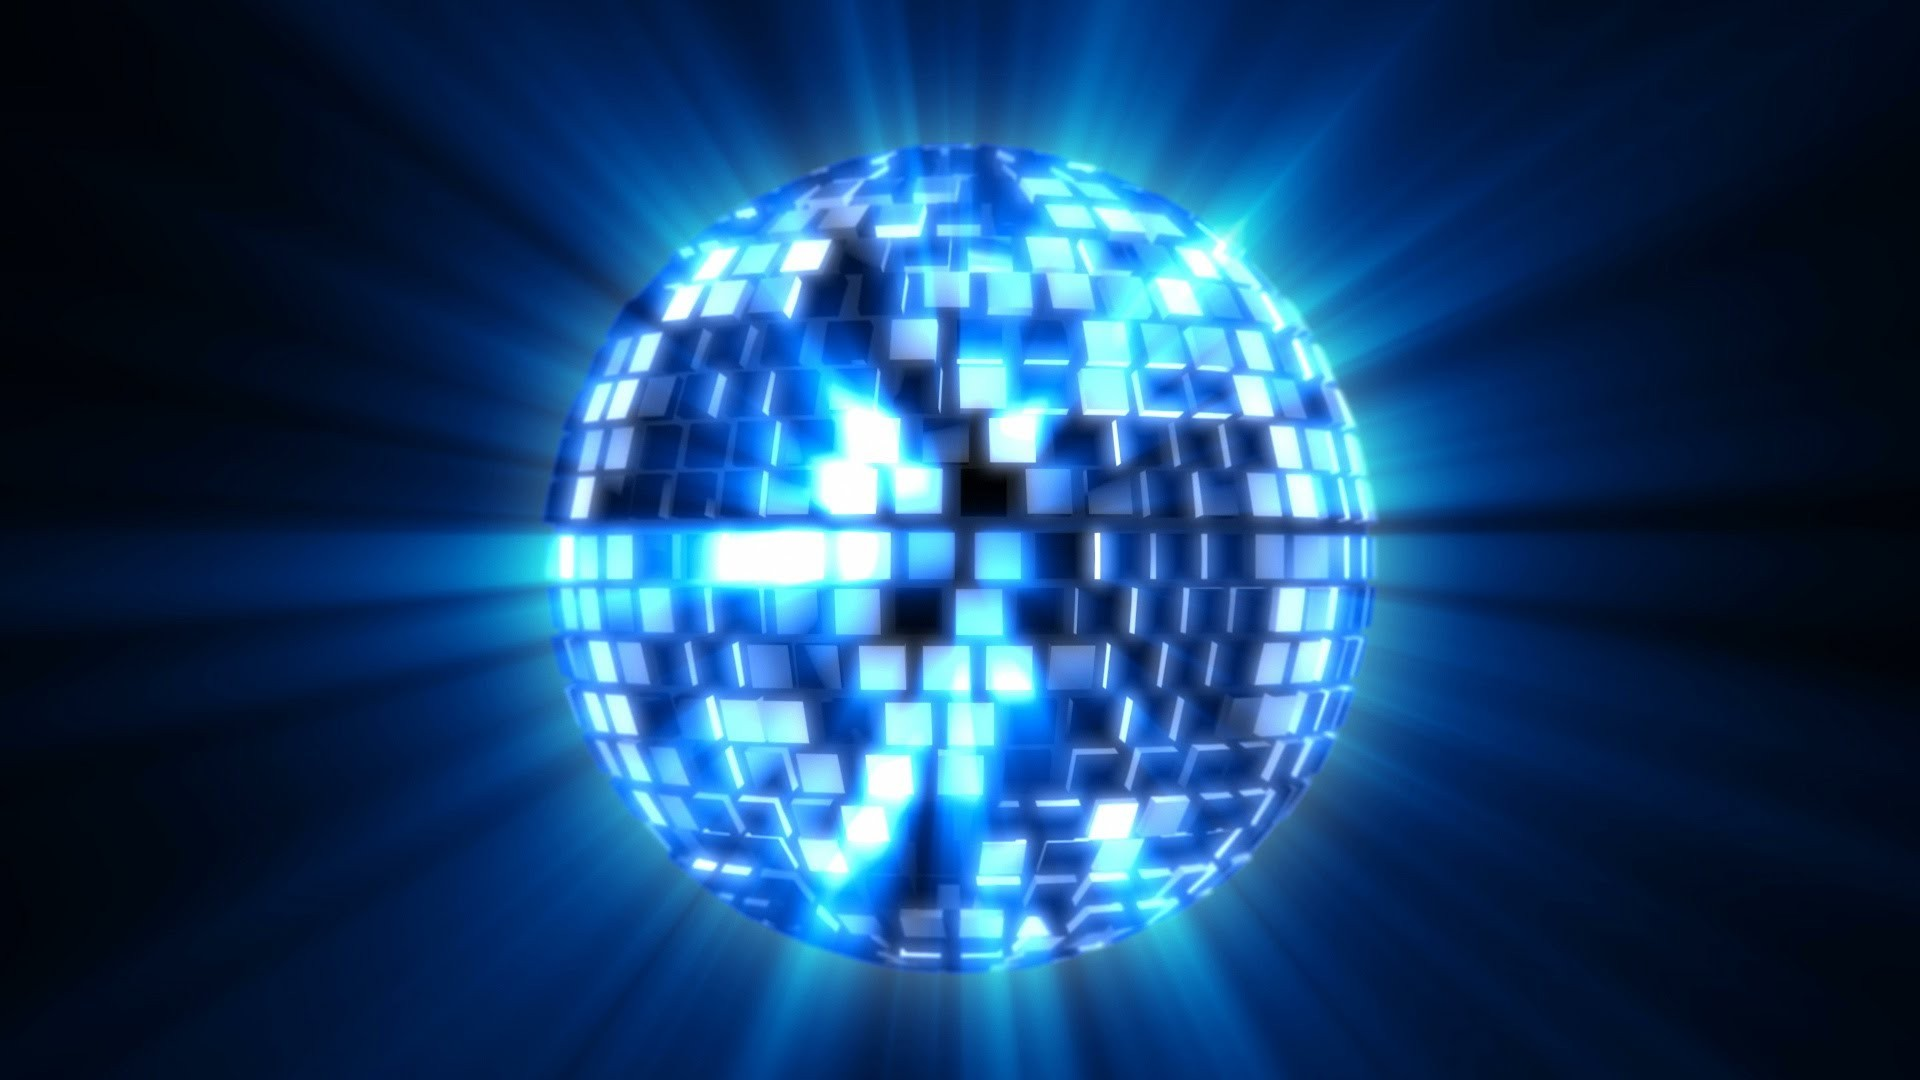 Shiny Mirror Disco Ball Spinning Image New Hd Wallpapers